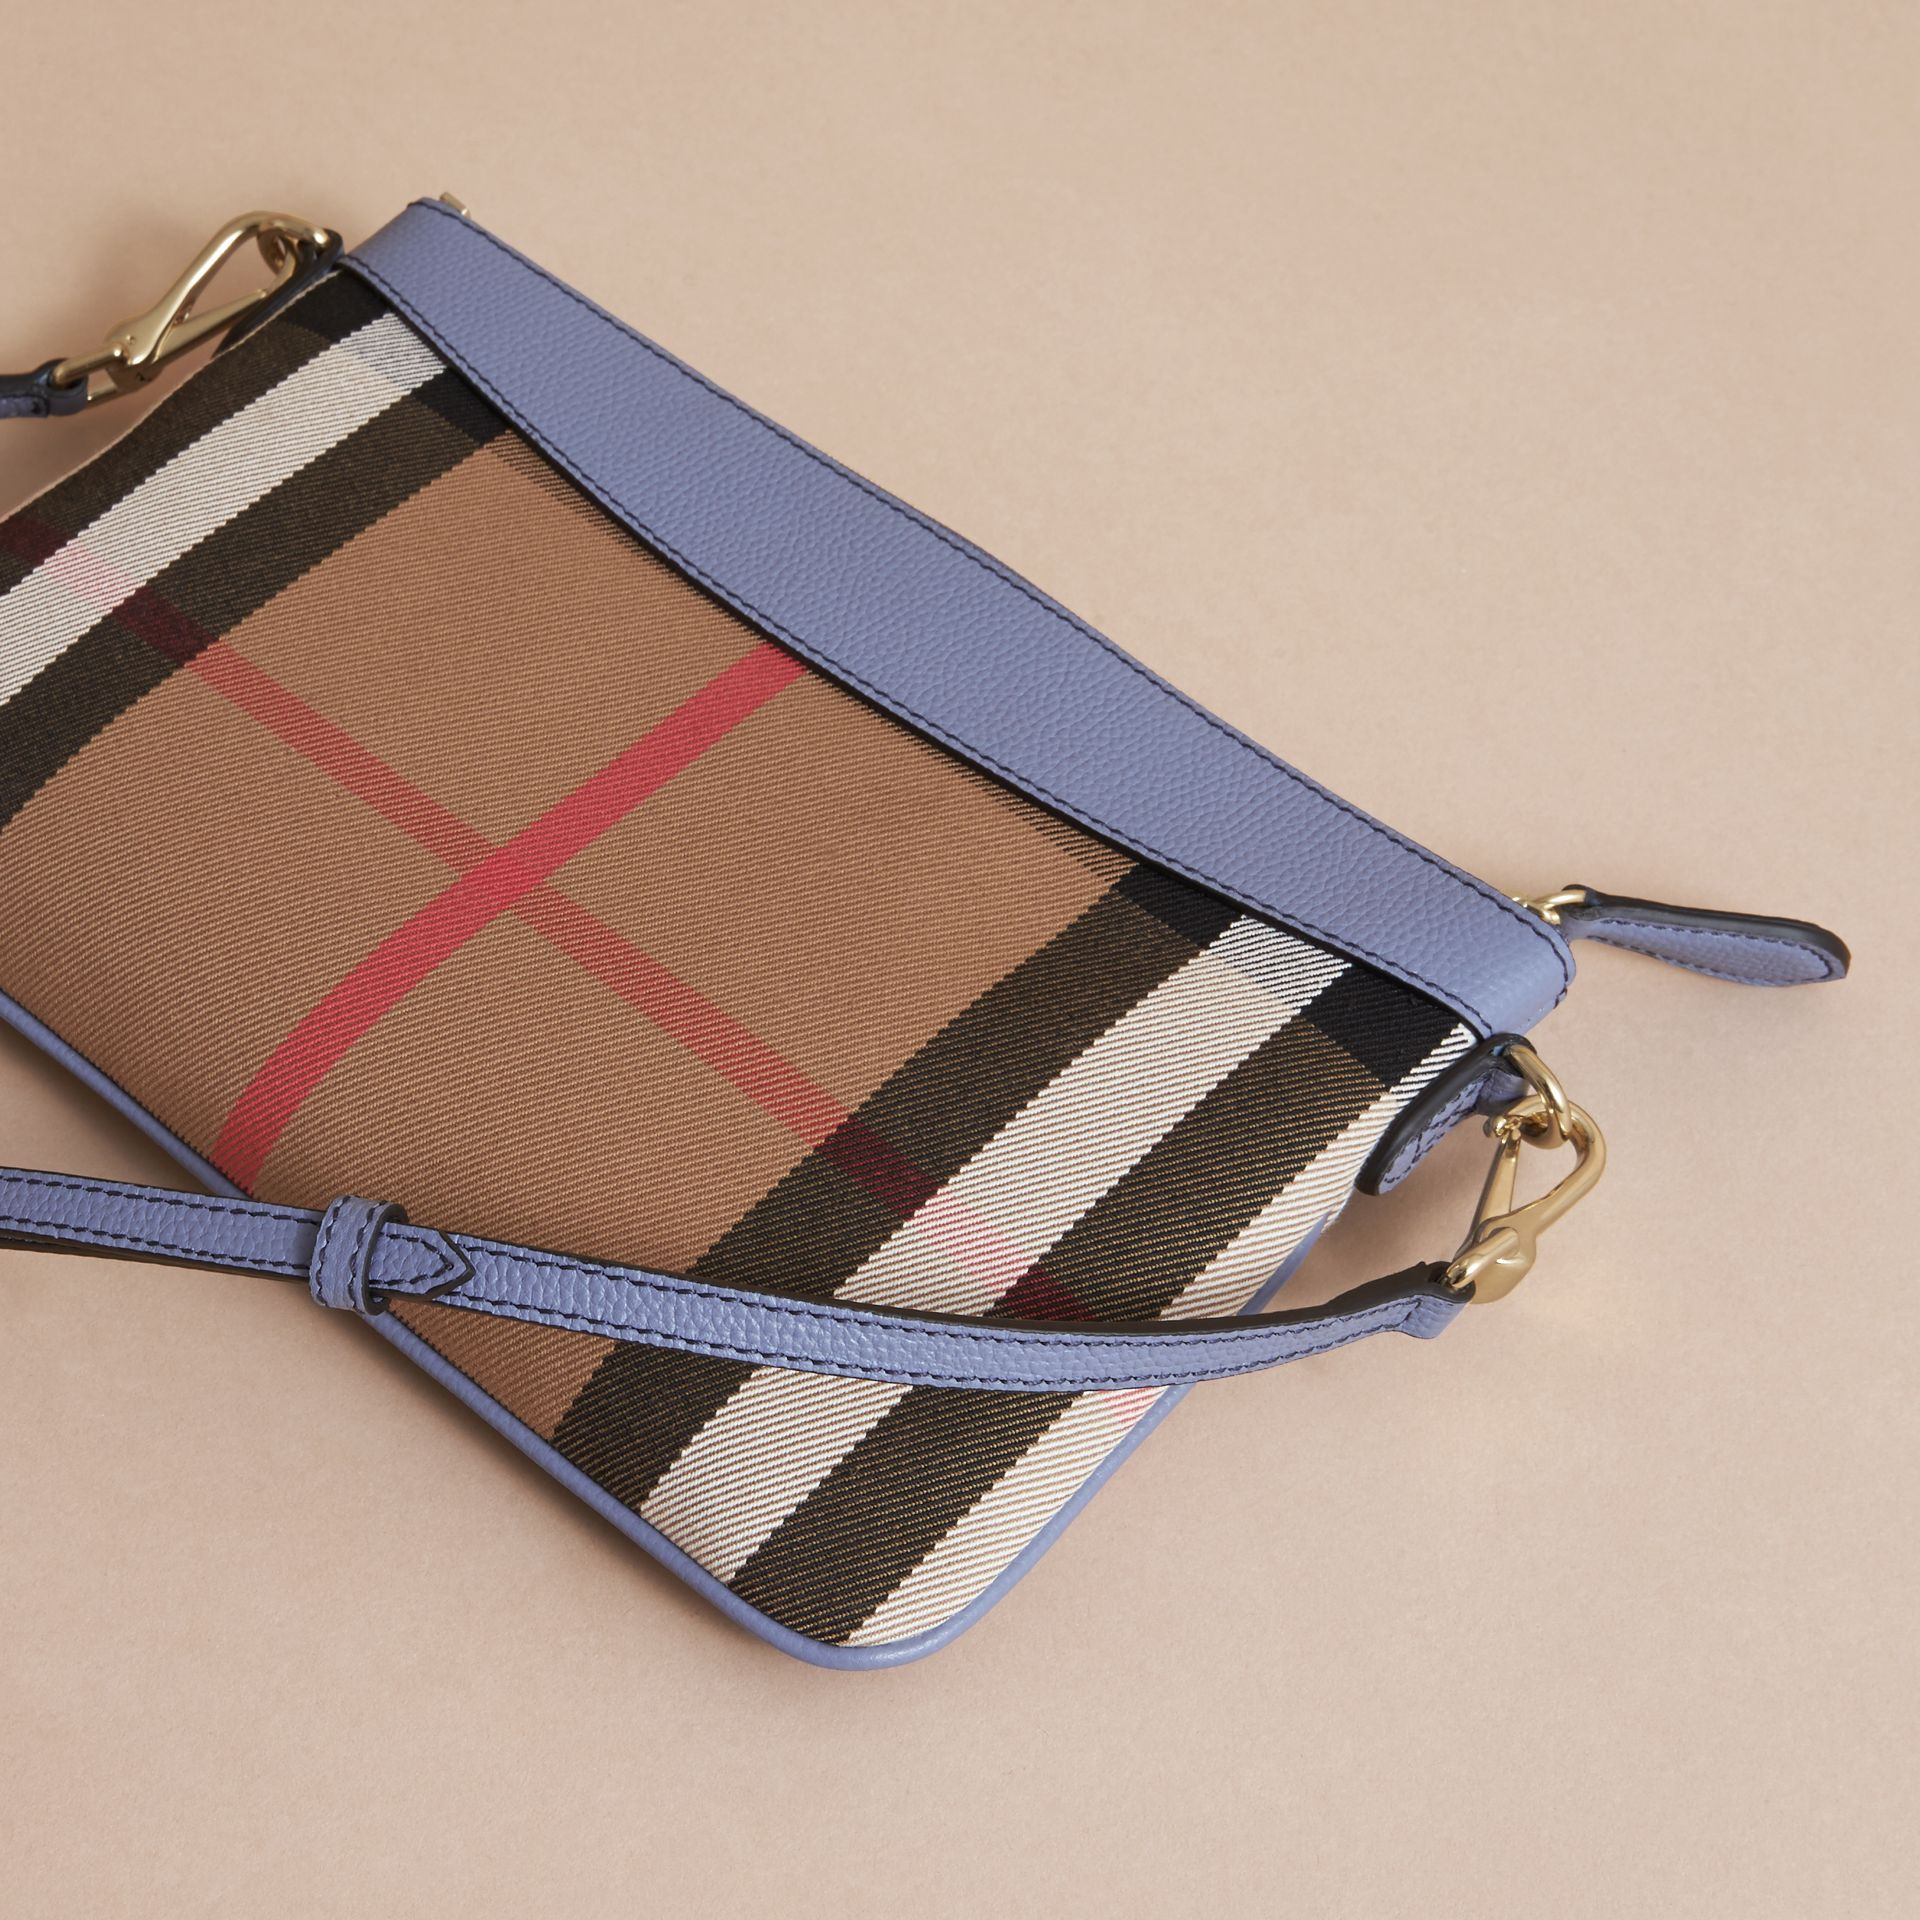 House Check and Leather Clutch Bag in Slate Blue - Women | Burberry - gallery image 5